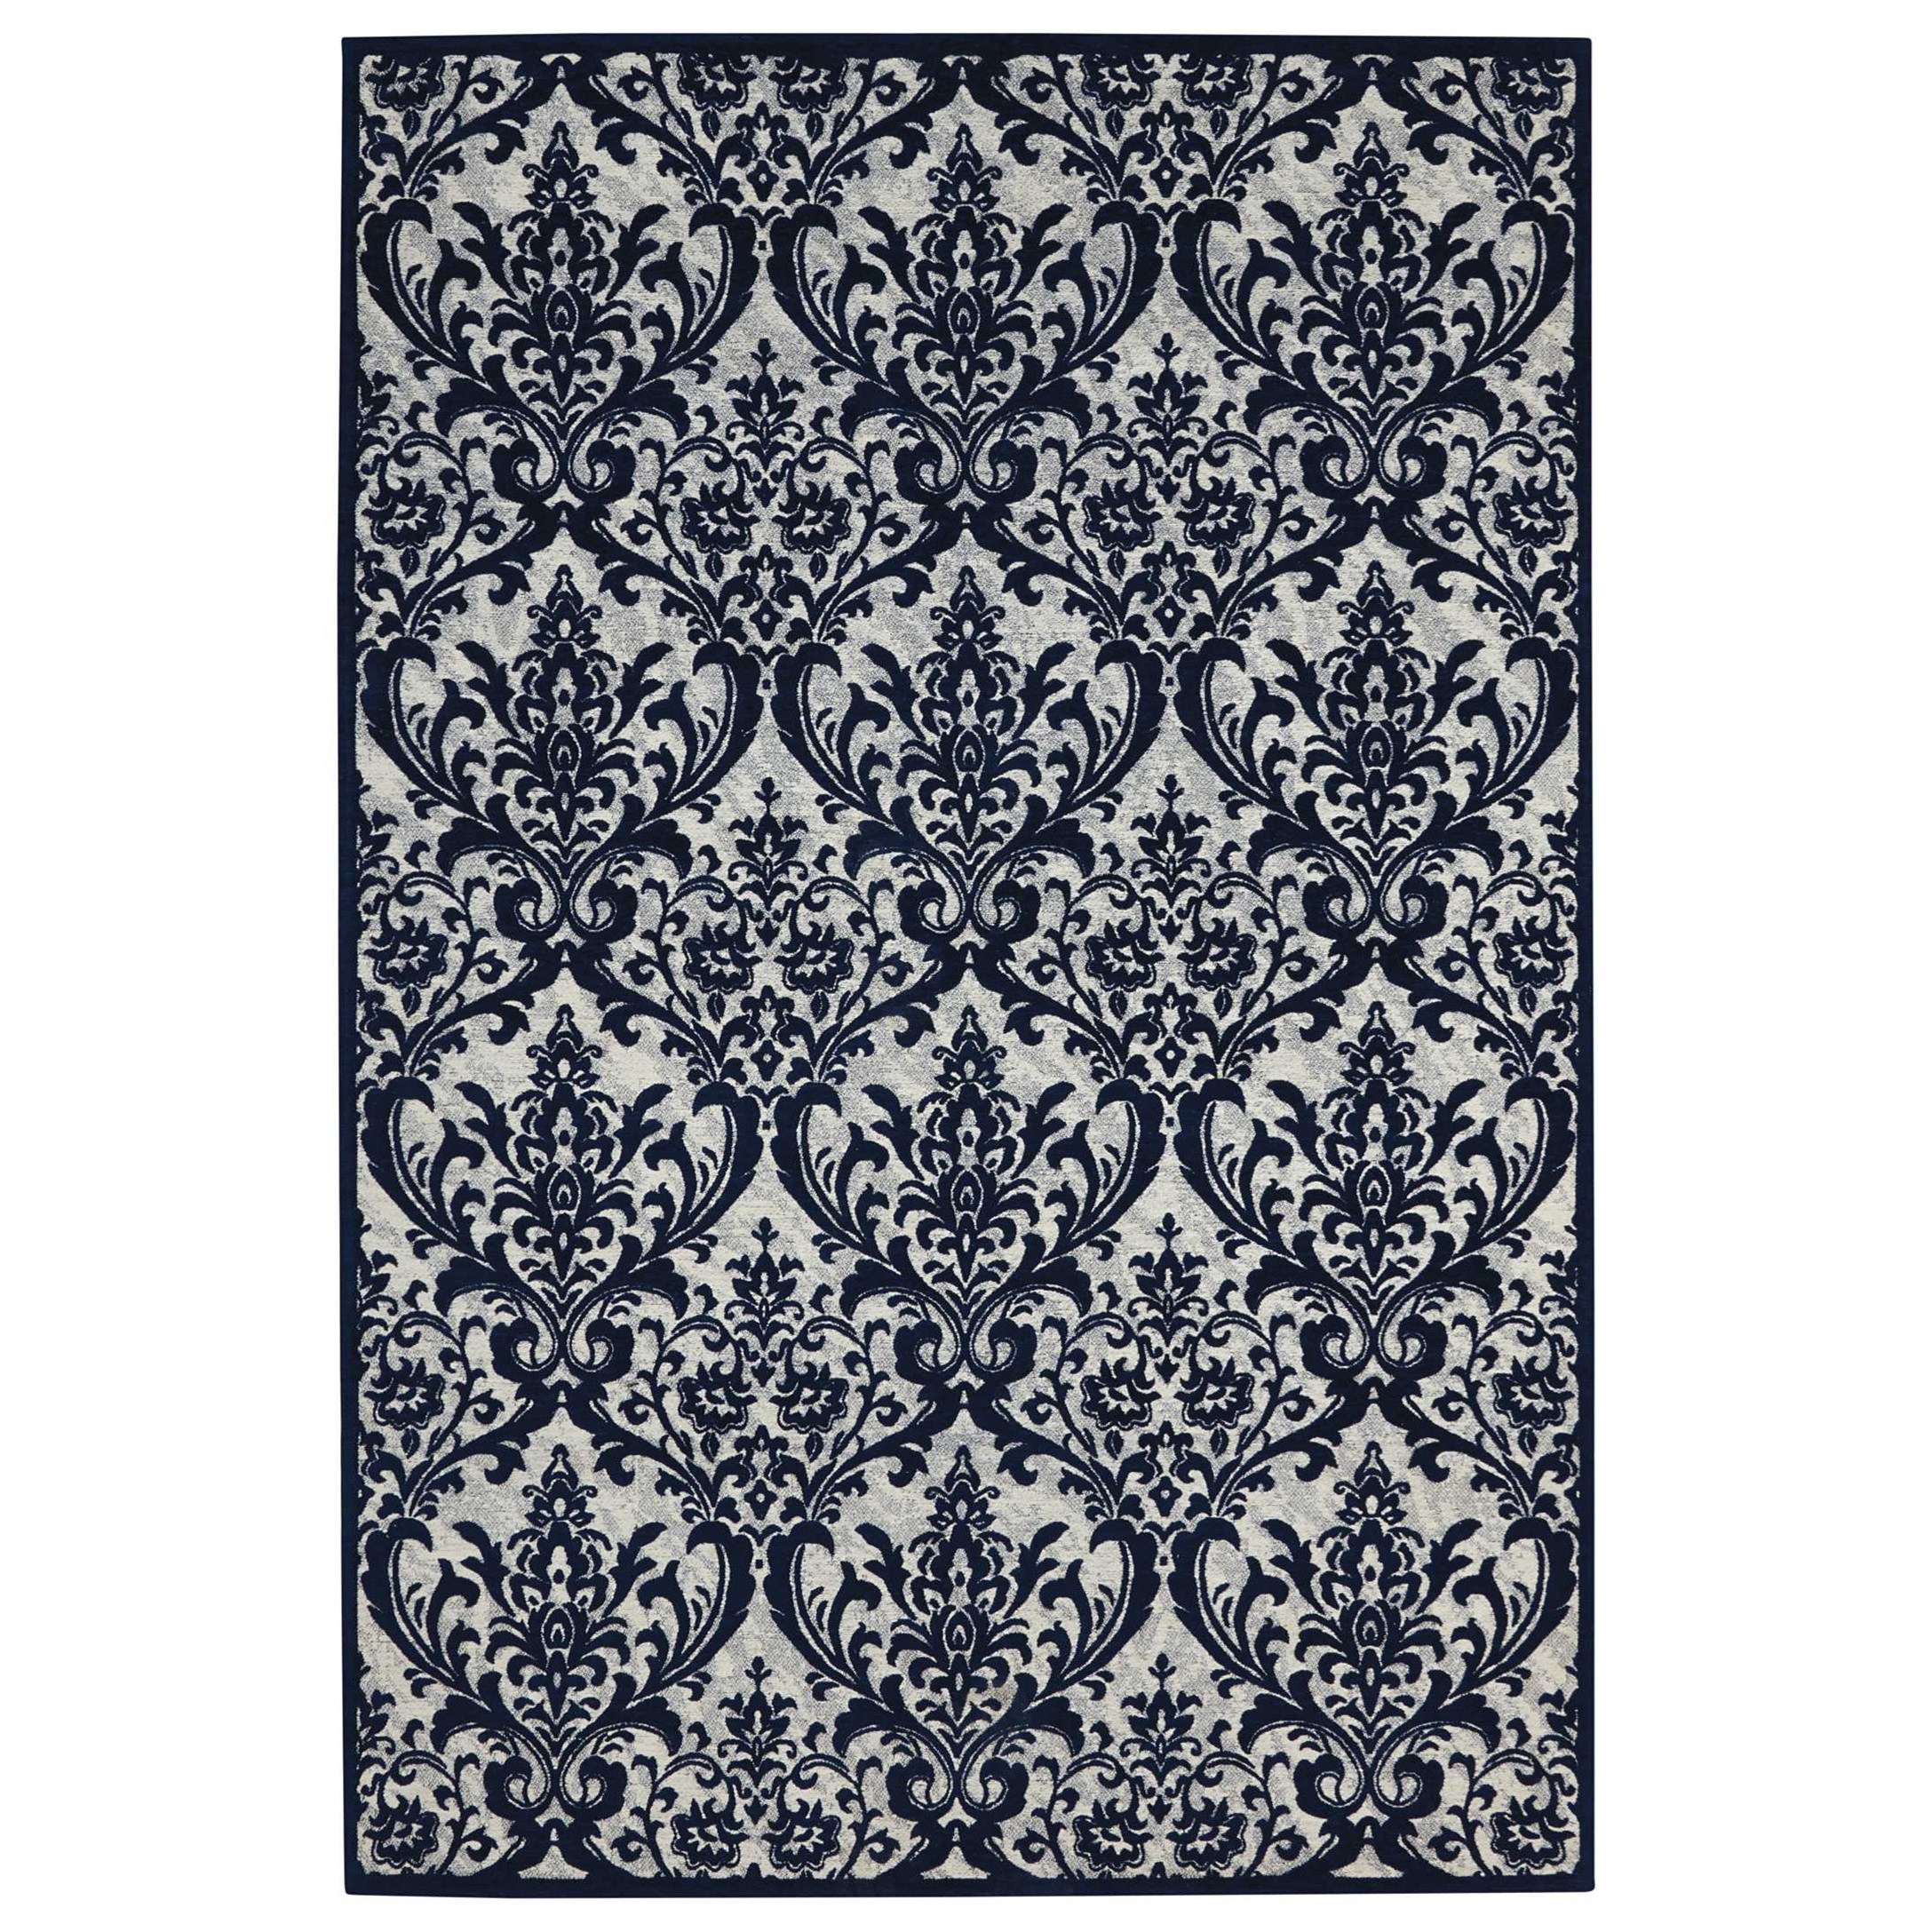 Damask 8' X 10' Ivory/Navy Rug by Nourison at Home Collections Furniture